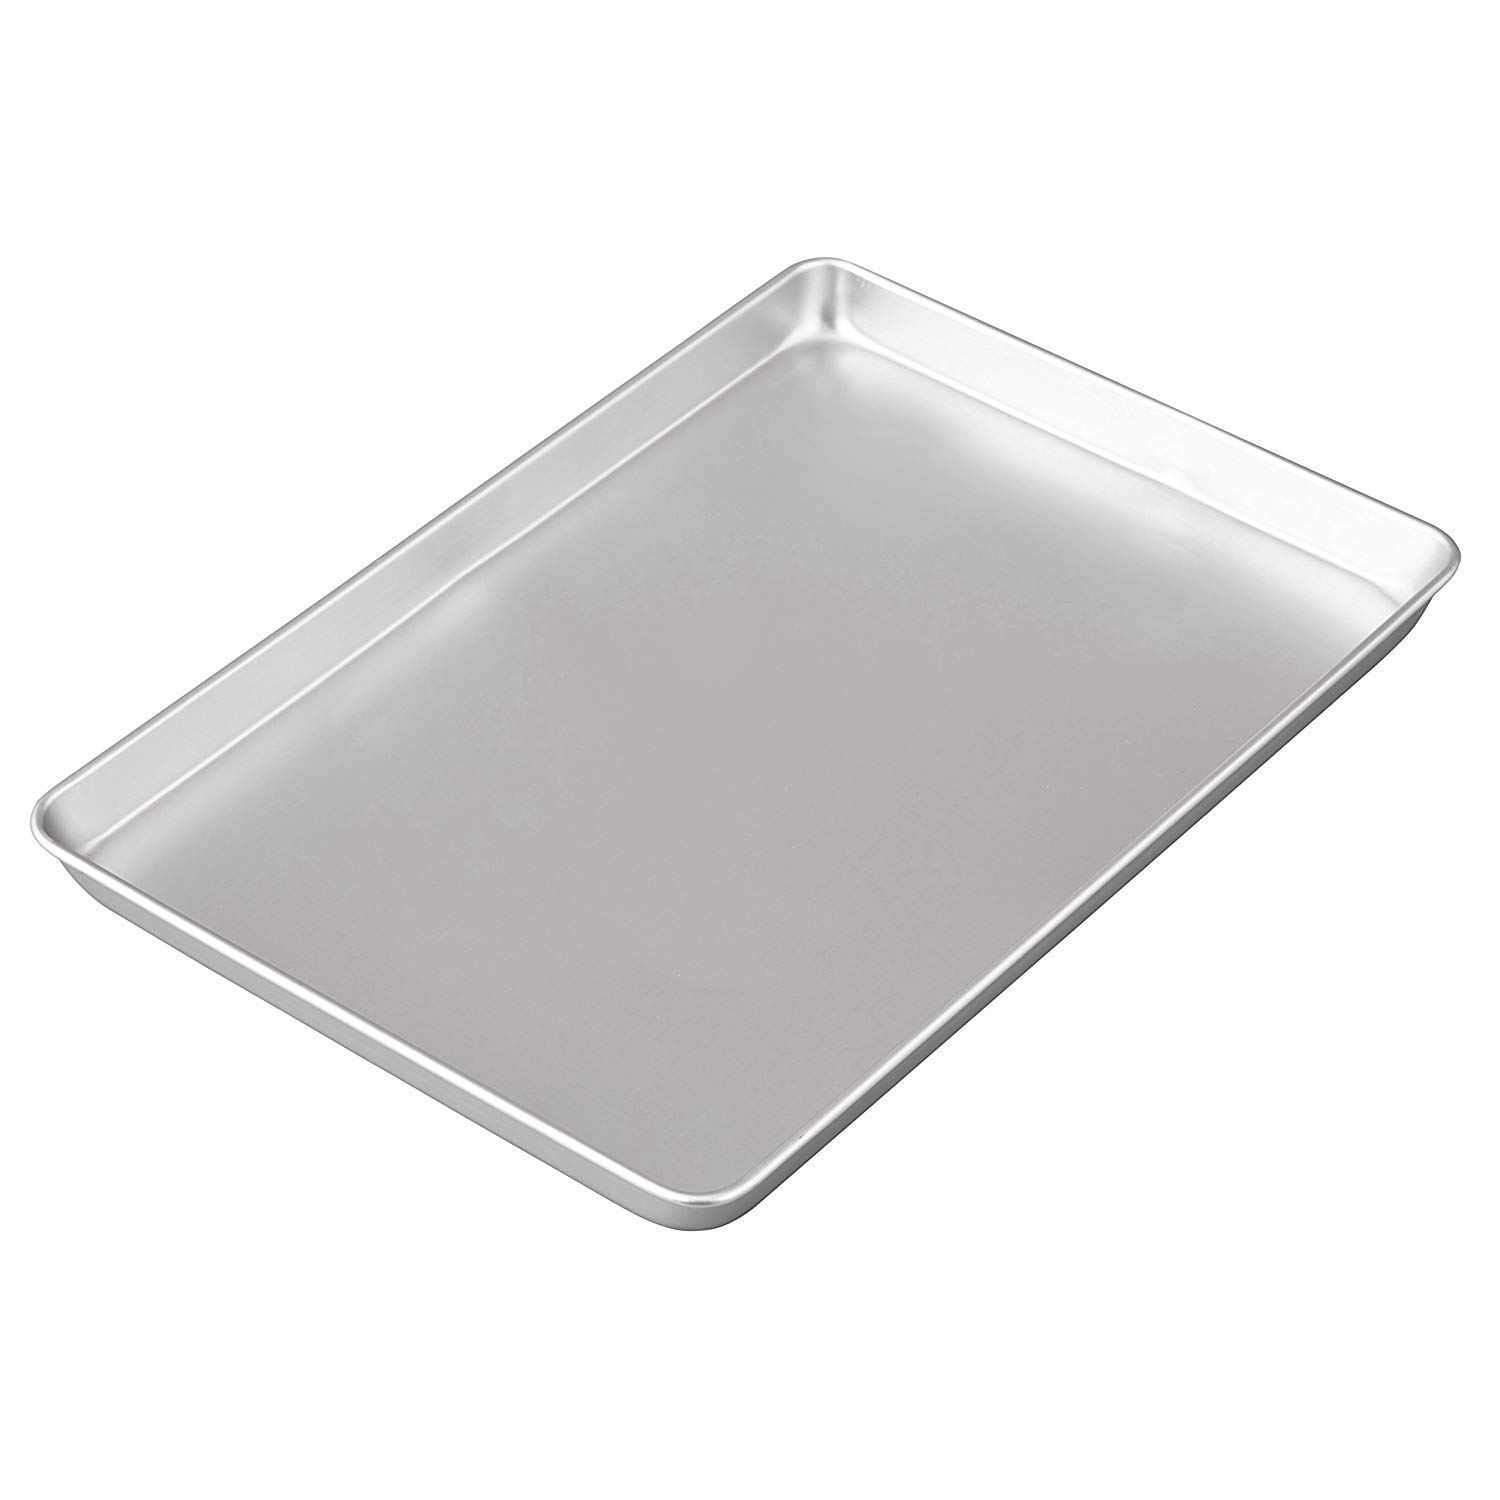 Amazon.com: Wilton Performance Pans Aluminum Jelly Roll and Cookie Pan, 10.5 x 15.5-Inch, 3 Pack: Home & Kitchen